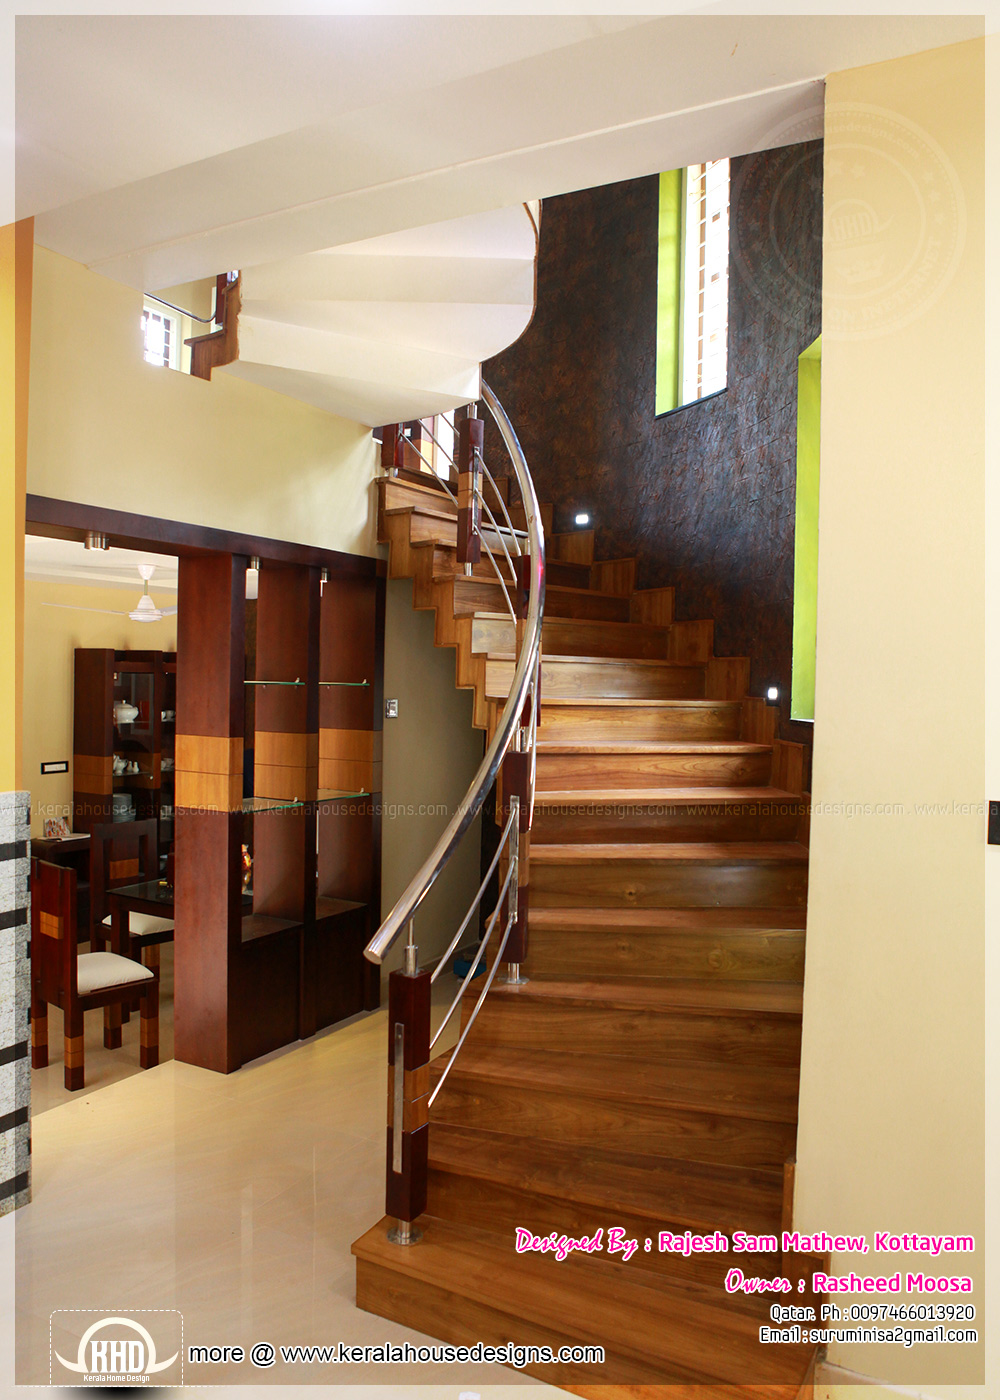 Kerala interior design with photos kerala home design for House interior design nagercoil